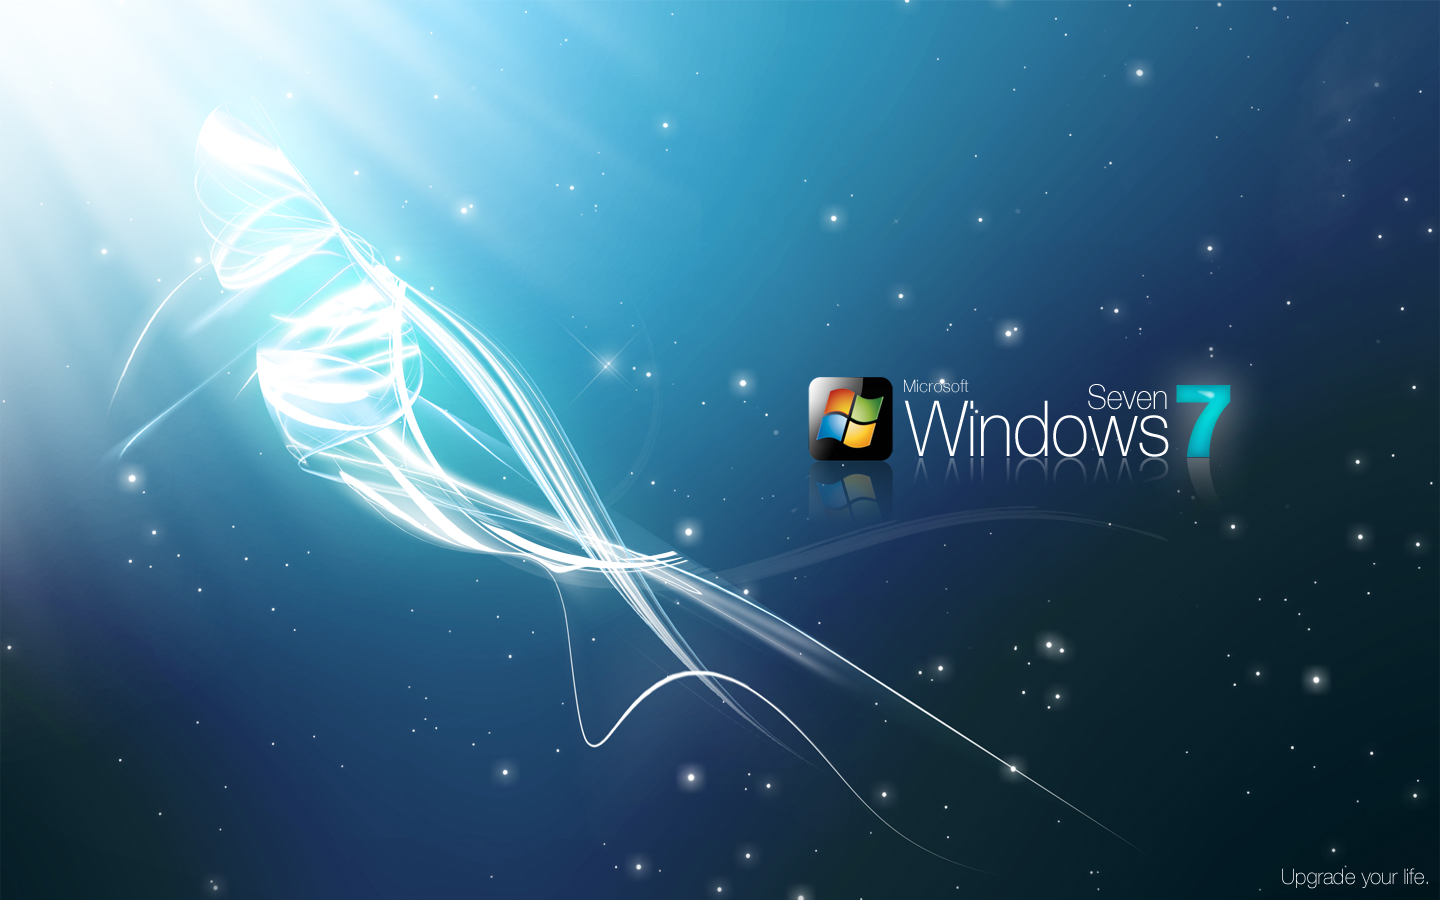 Change Your Wallpaper on Windows Starter TechSpot Guides